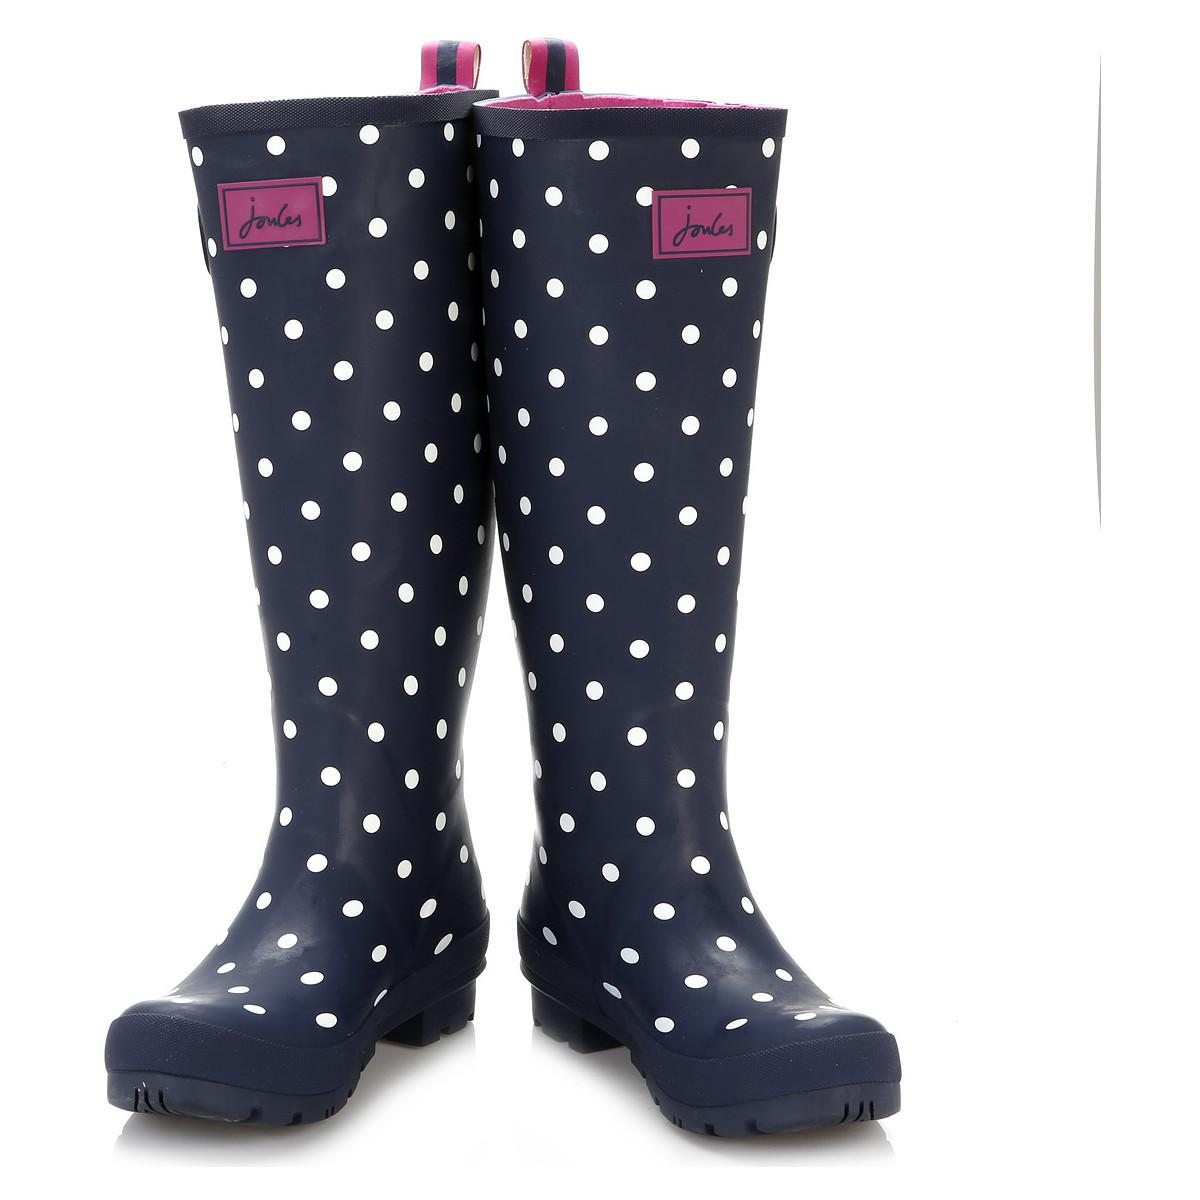 Joules Rubber Womens Navy Spot Wellington Boots in Blue